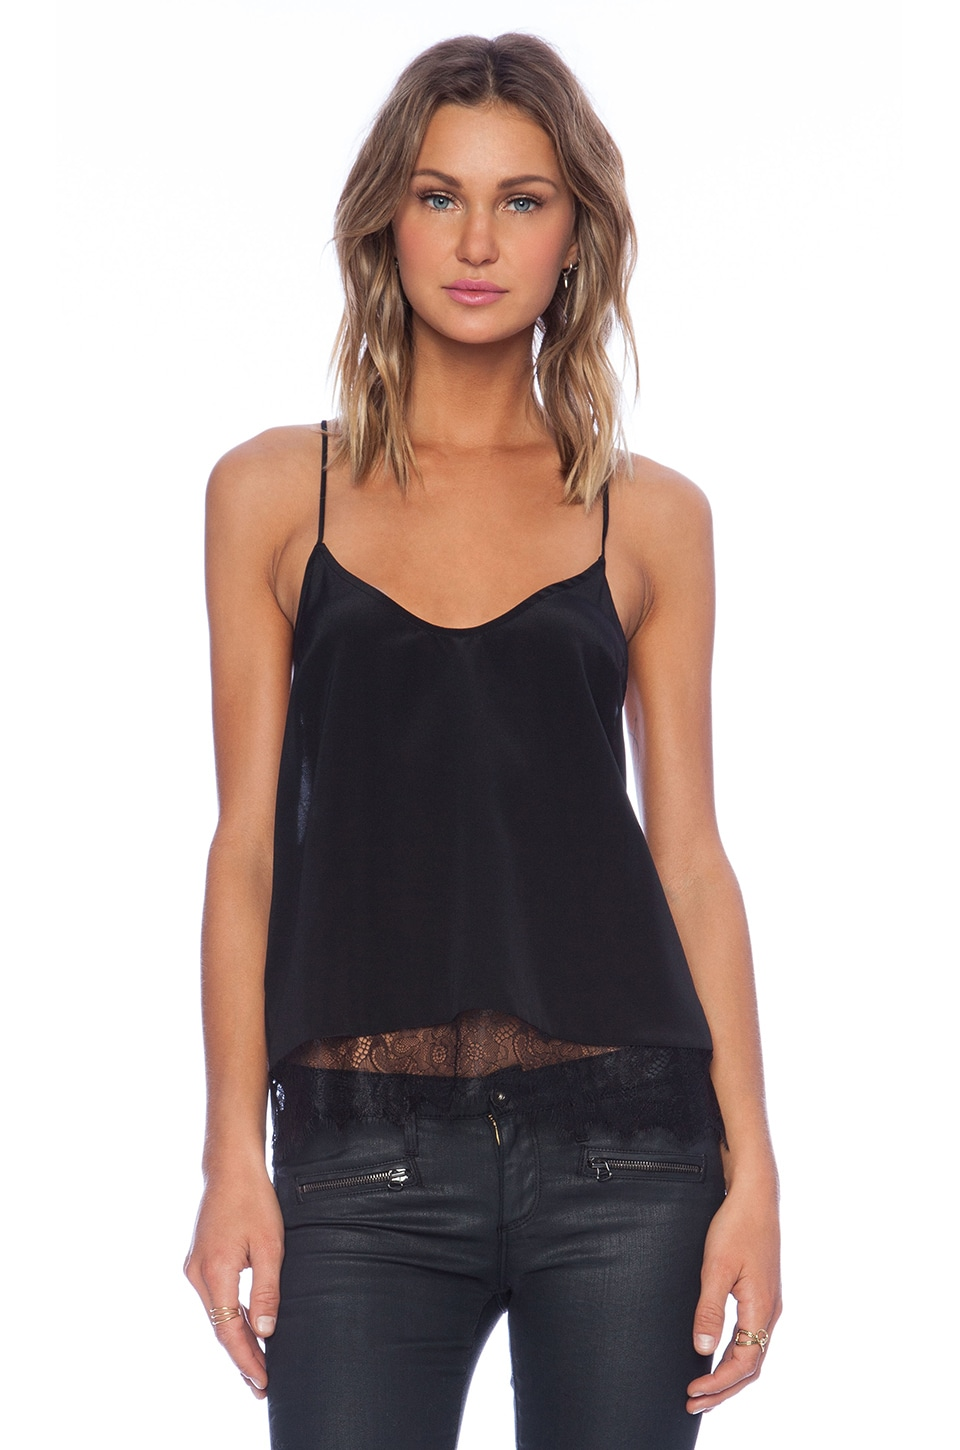 Myne Coal Tank Top in Black